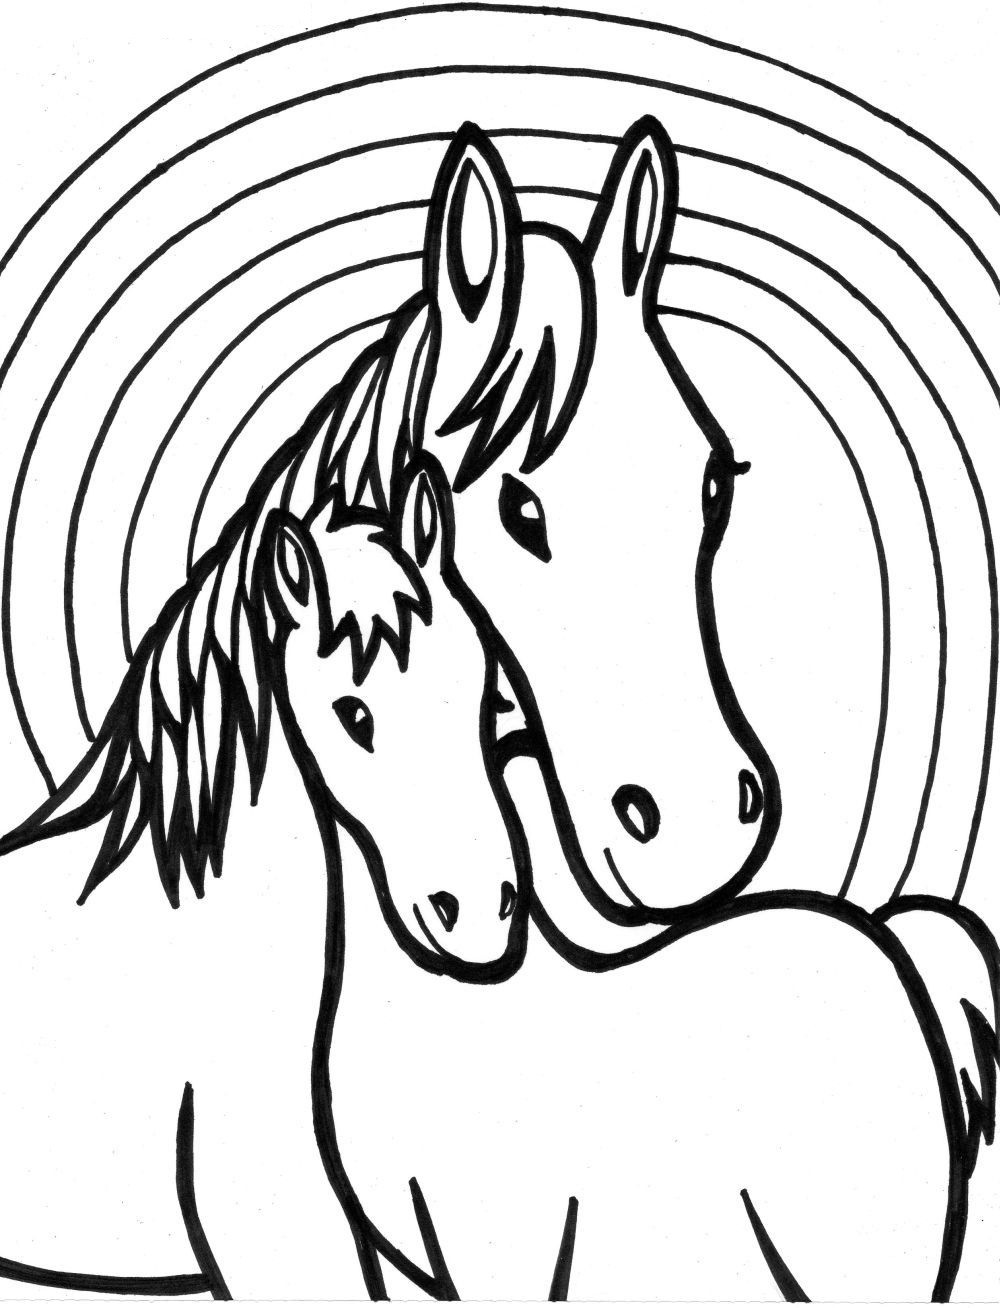 printable colouring pages for girls american girl coloring pages best coloring pages for kids for girls printable colouring pages